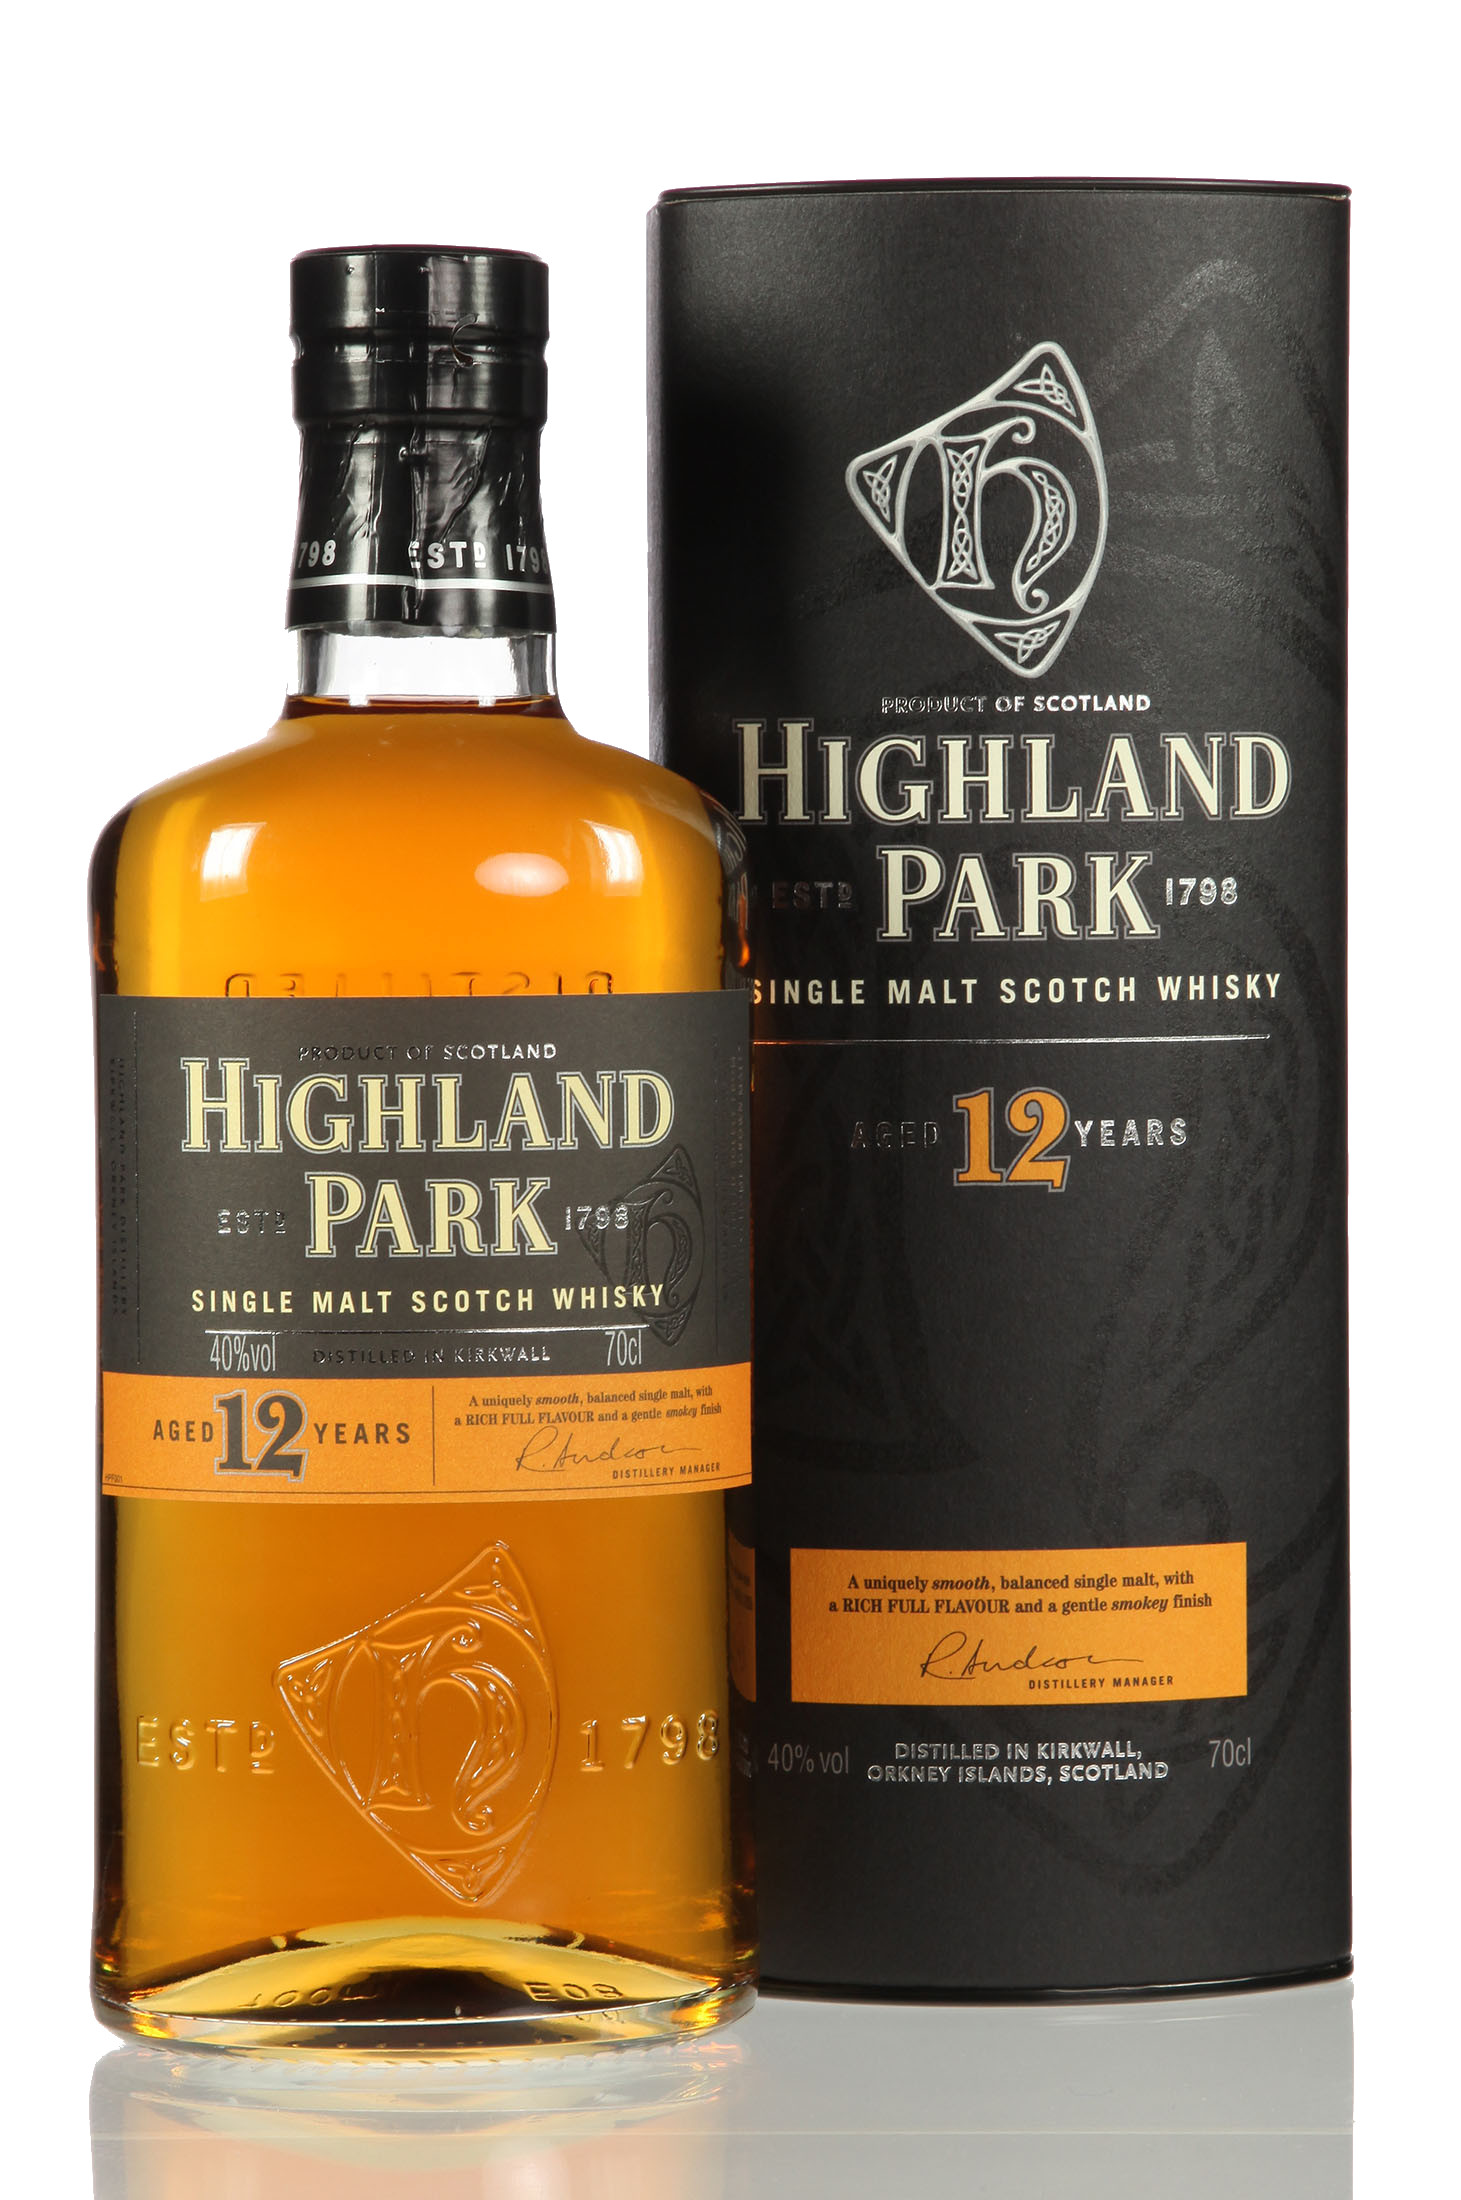 singles in highland park Highland park was named 'best spirit in the world' by usa whisky expert paul pacult in his 2005, spirit journal 100 listing of the world's best 100 distilled spirits.